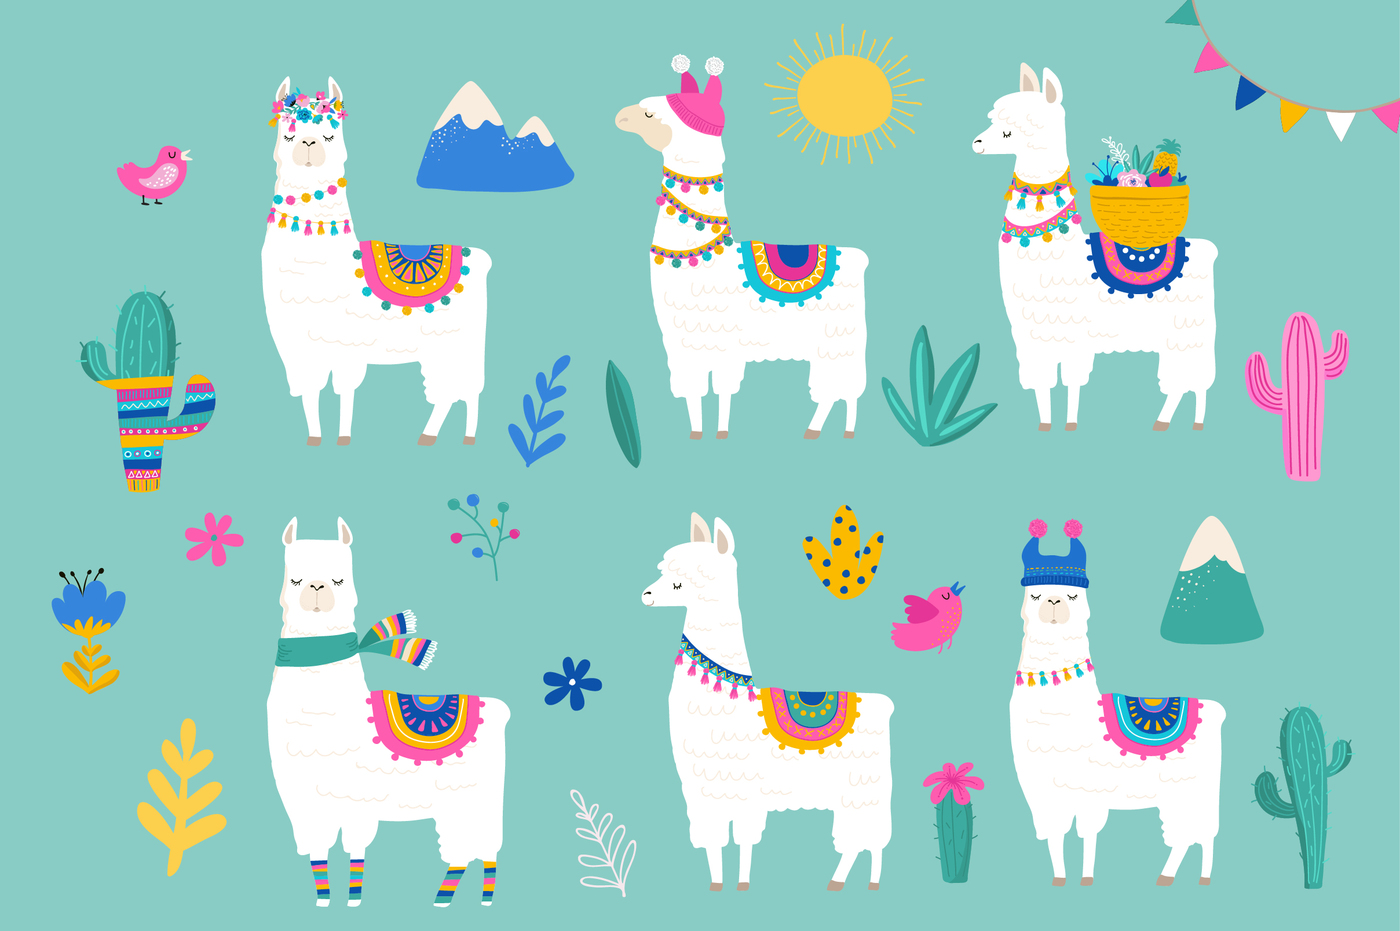 Llama clipart mexican. Hola cute summer collection